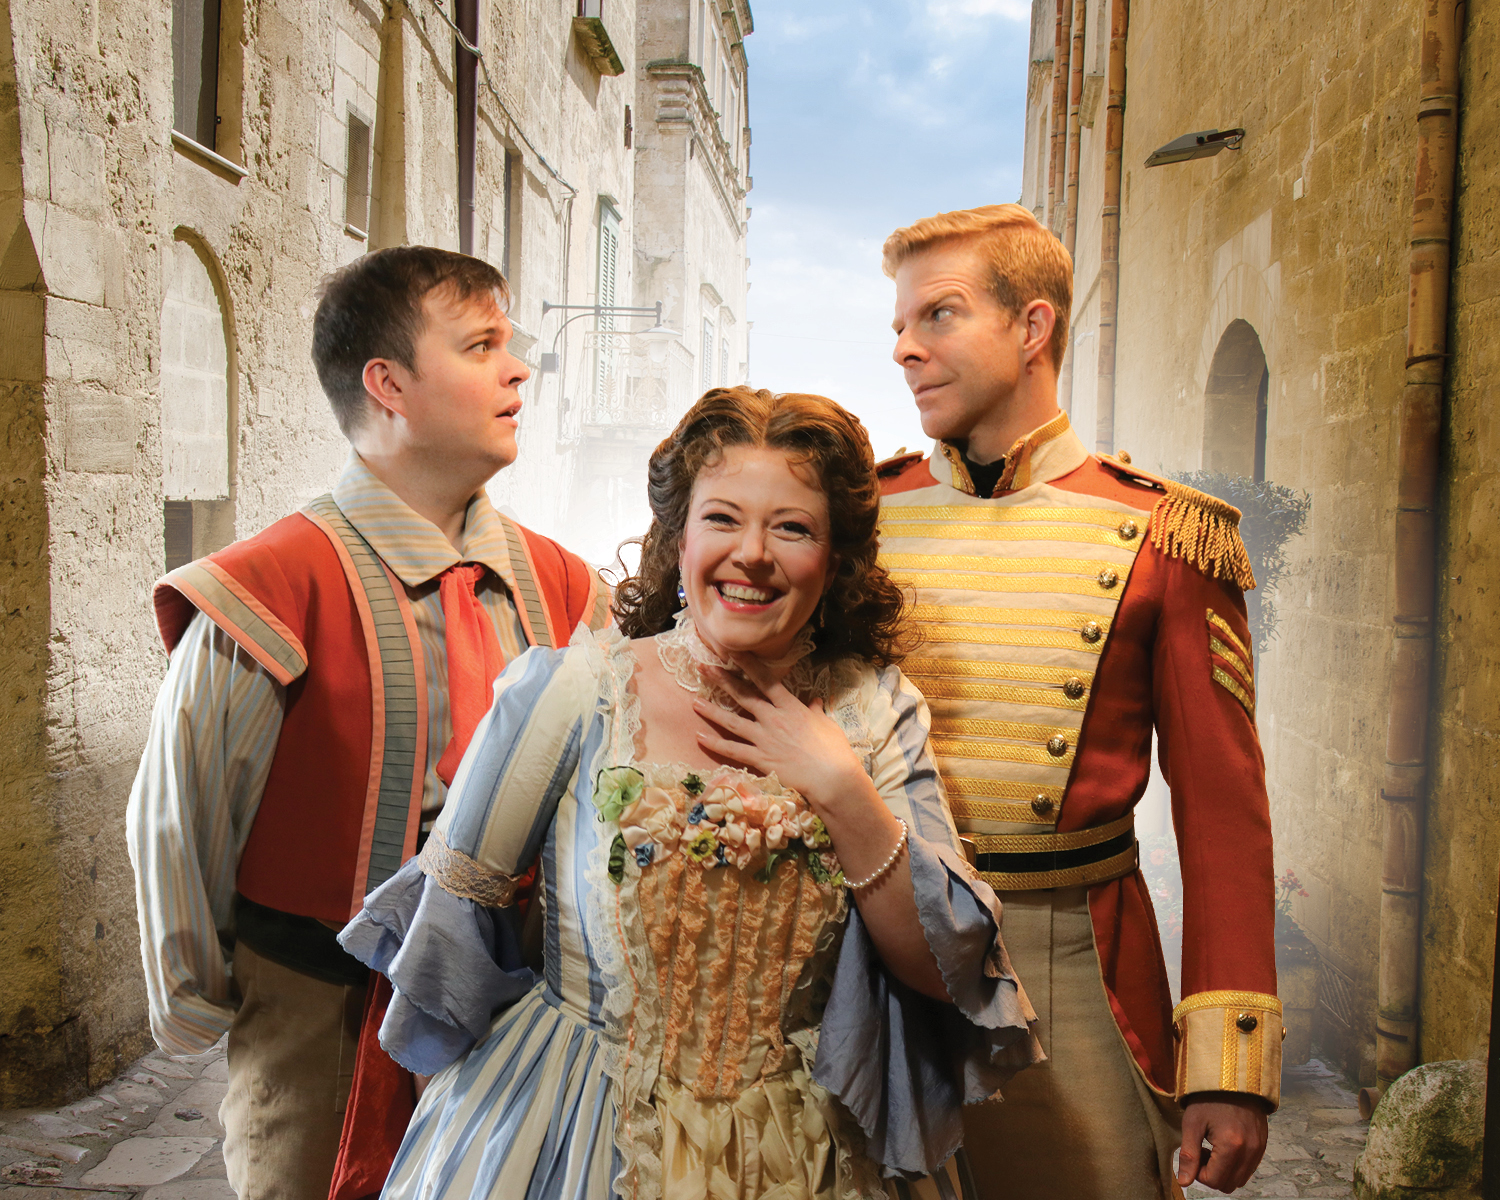 IN REVIEW: (from left to right) tenor DAVID BLALOCK as Nemorino, soprano JODI BURNS as Adina, and baritone GREGORY GERBRANDT as Belcore in Piedmont Opera's March 2019 production of Gaetano Donizetti's L'ELISIR D'AMORE [Photograph © Mariedith Appanaitis / Piedmont Opera]